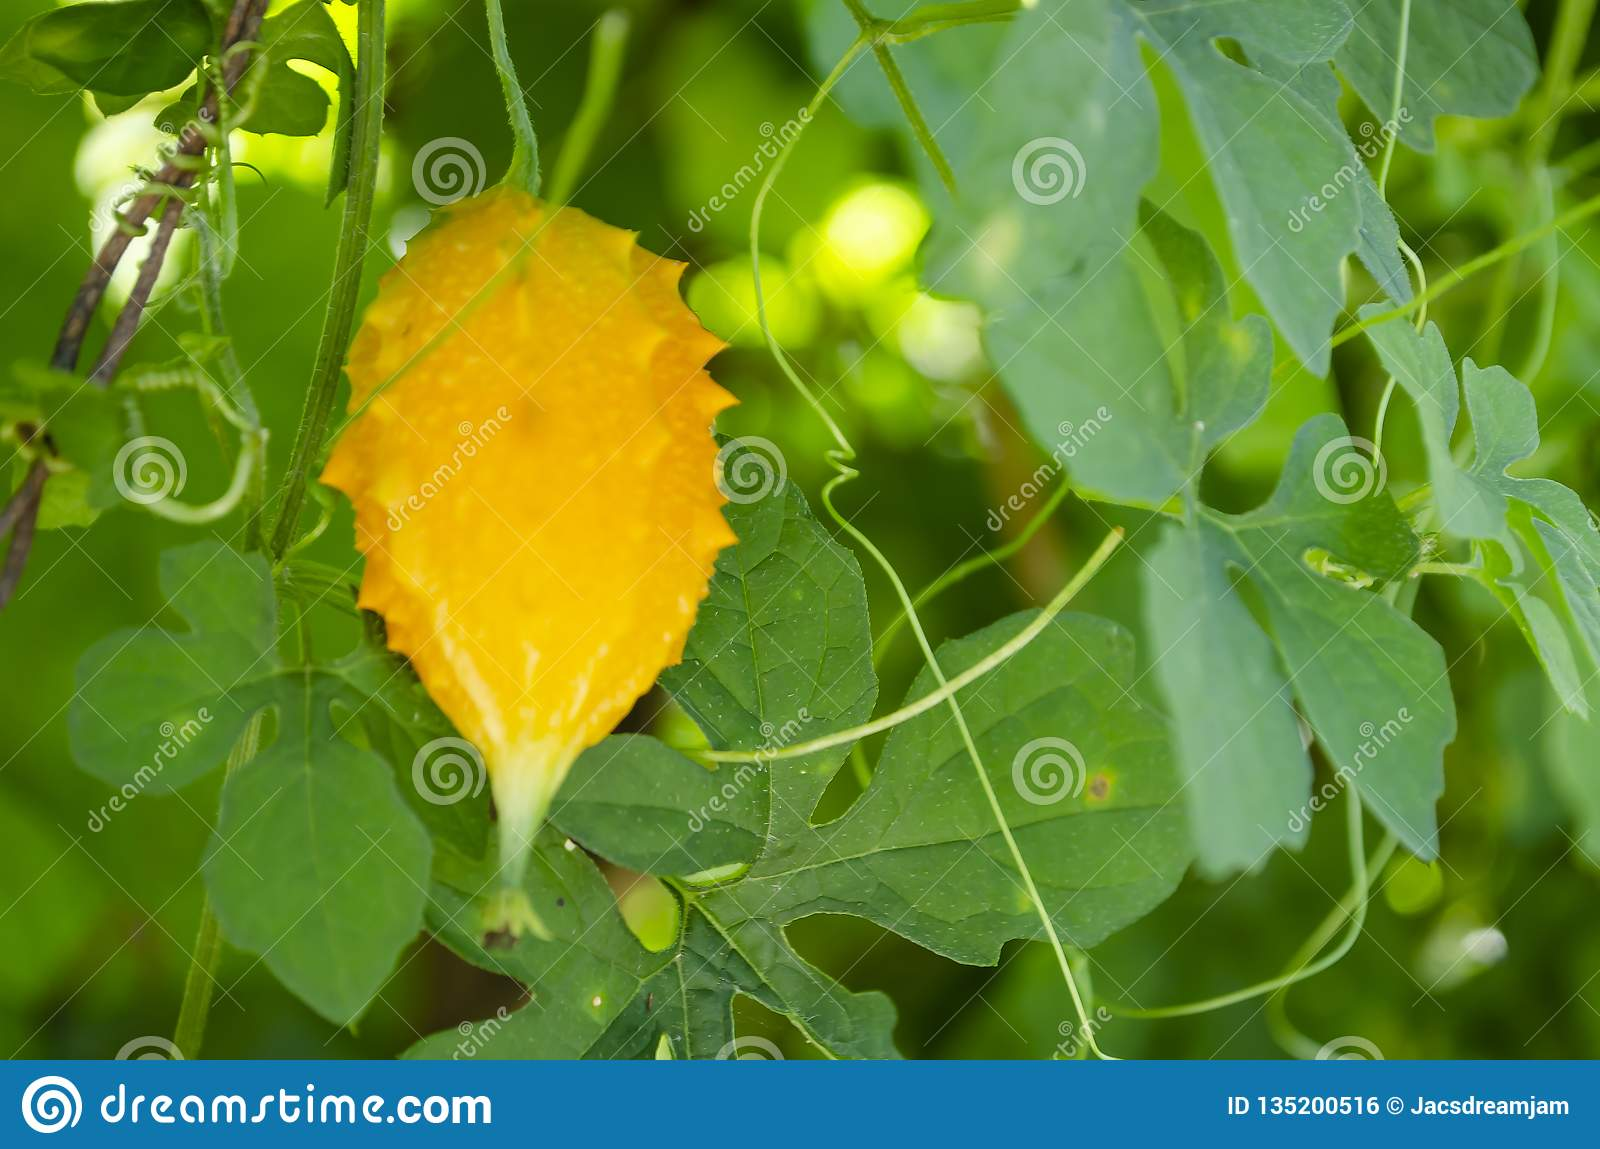 Serasee Among Leaves Of Its Vine Stock Photo - Image of green, known